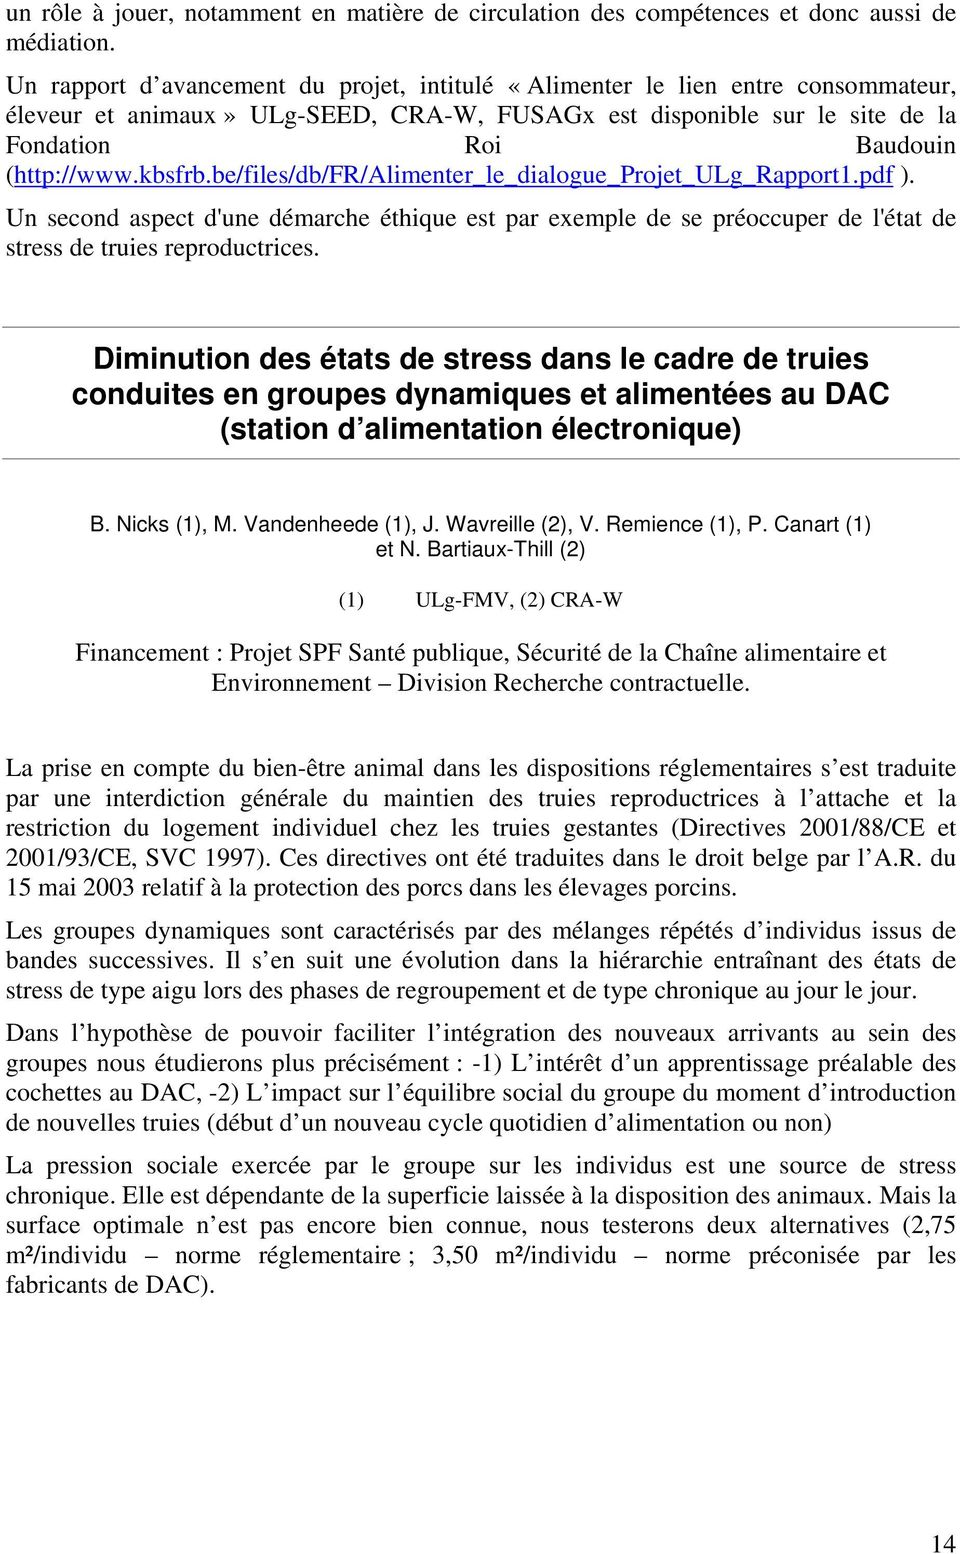 kbsfrb.be/files/db/fr/alimenter_le_dialogue_projet_ulg_rapport1.pdf ). Un second aspect d'une démarche éthique est par exemple de se préoccuper de l'état de stress de truies reproductrices.